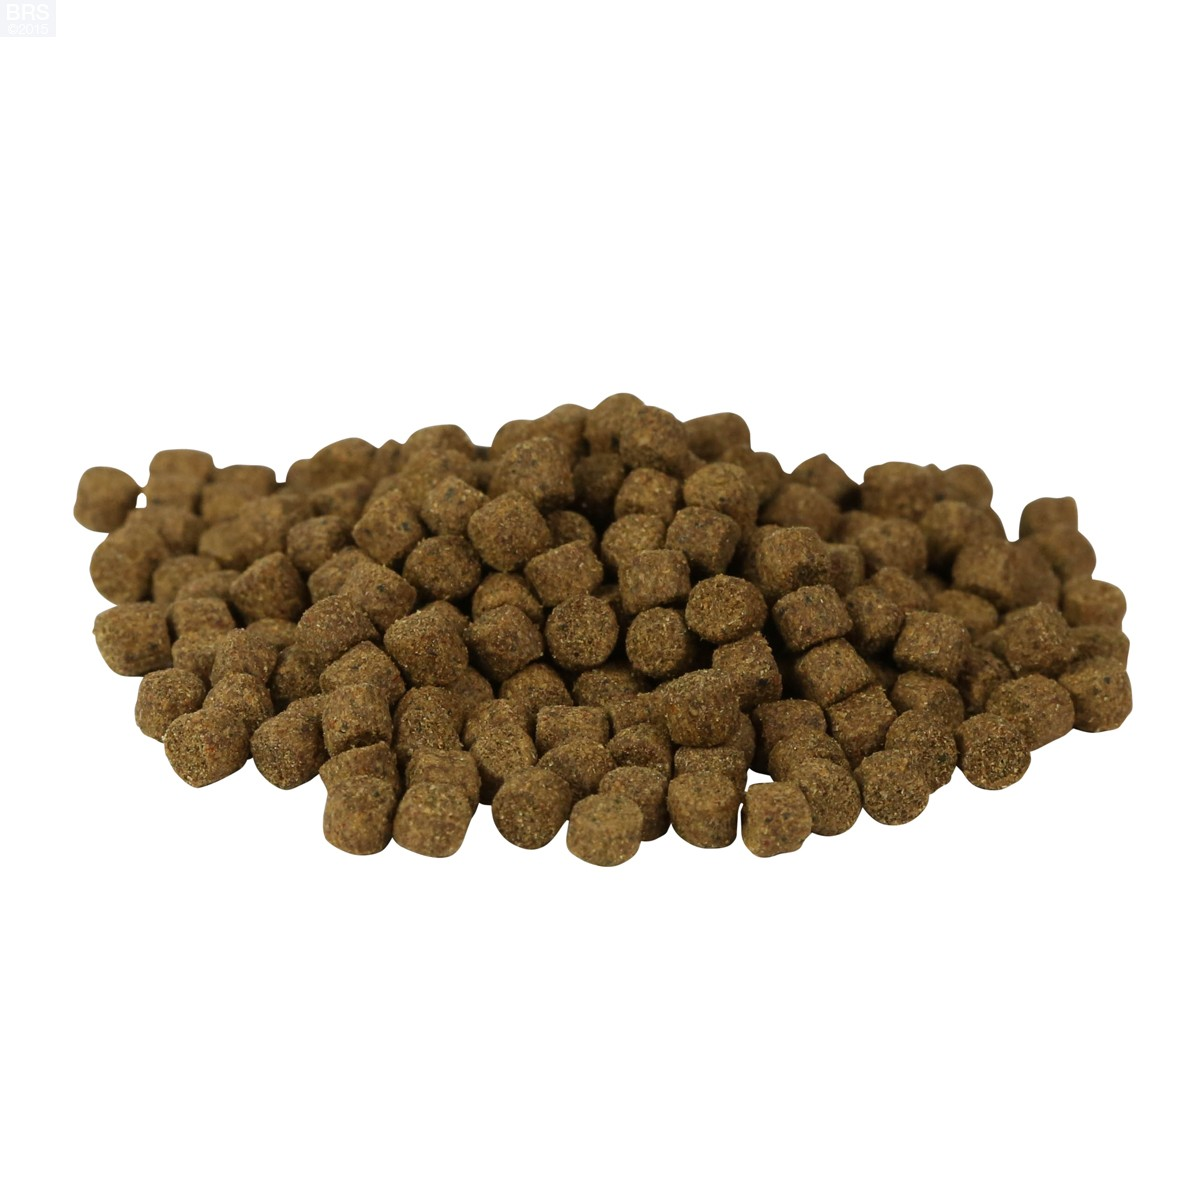 Marine a pellet fish food hikari bulk reef supply for Fish food pellets